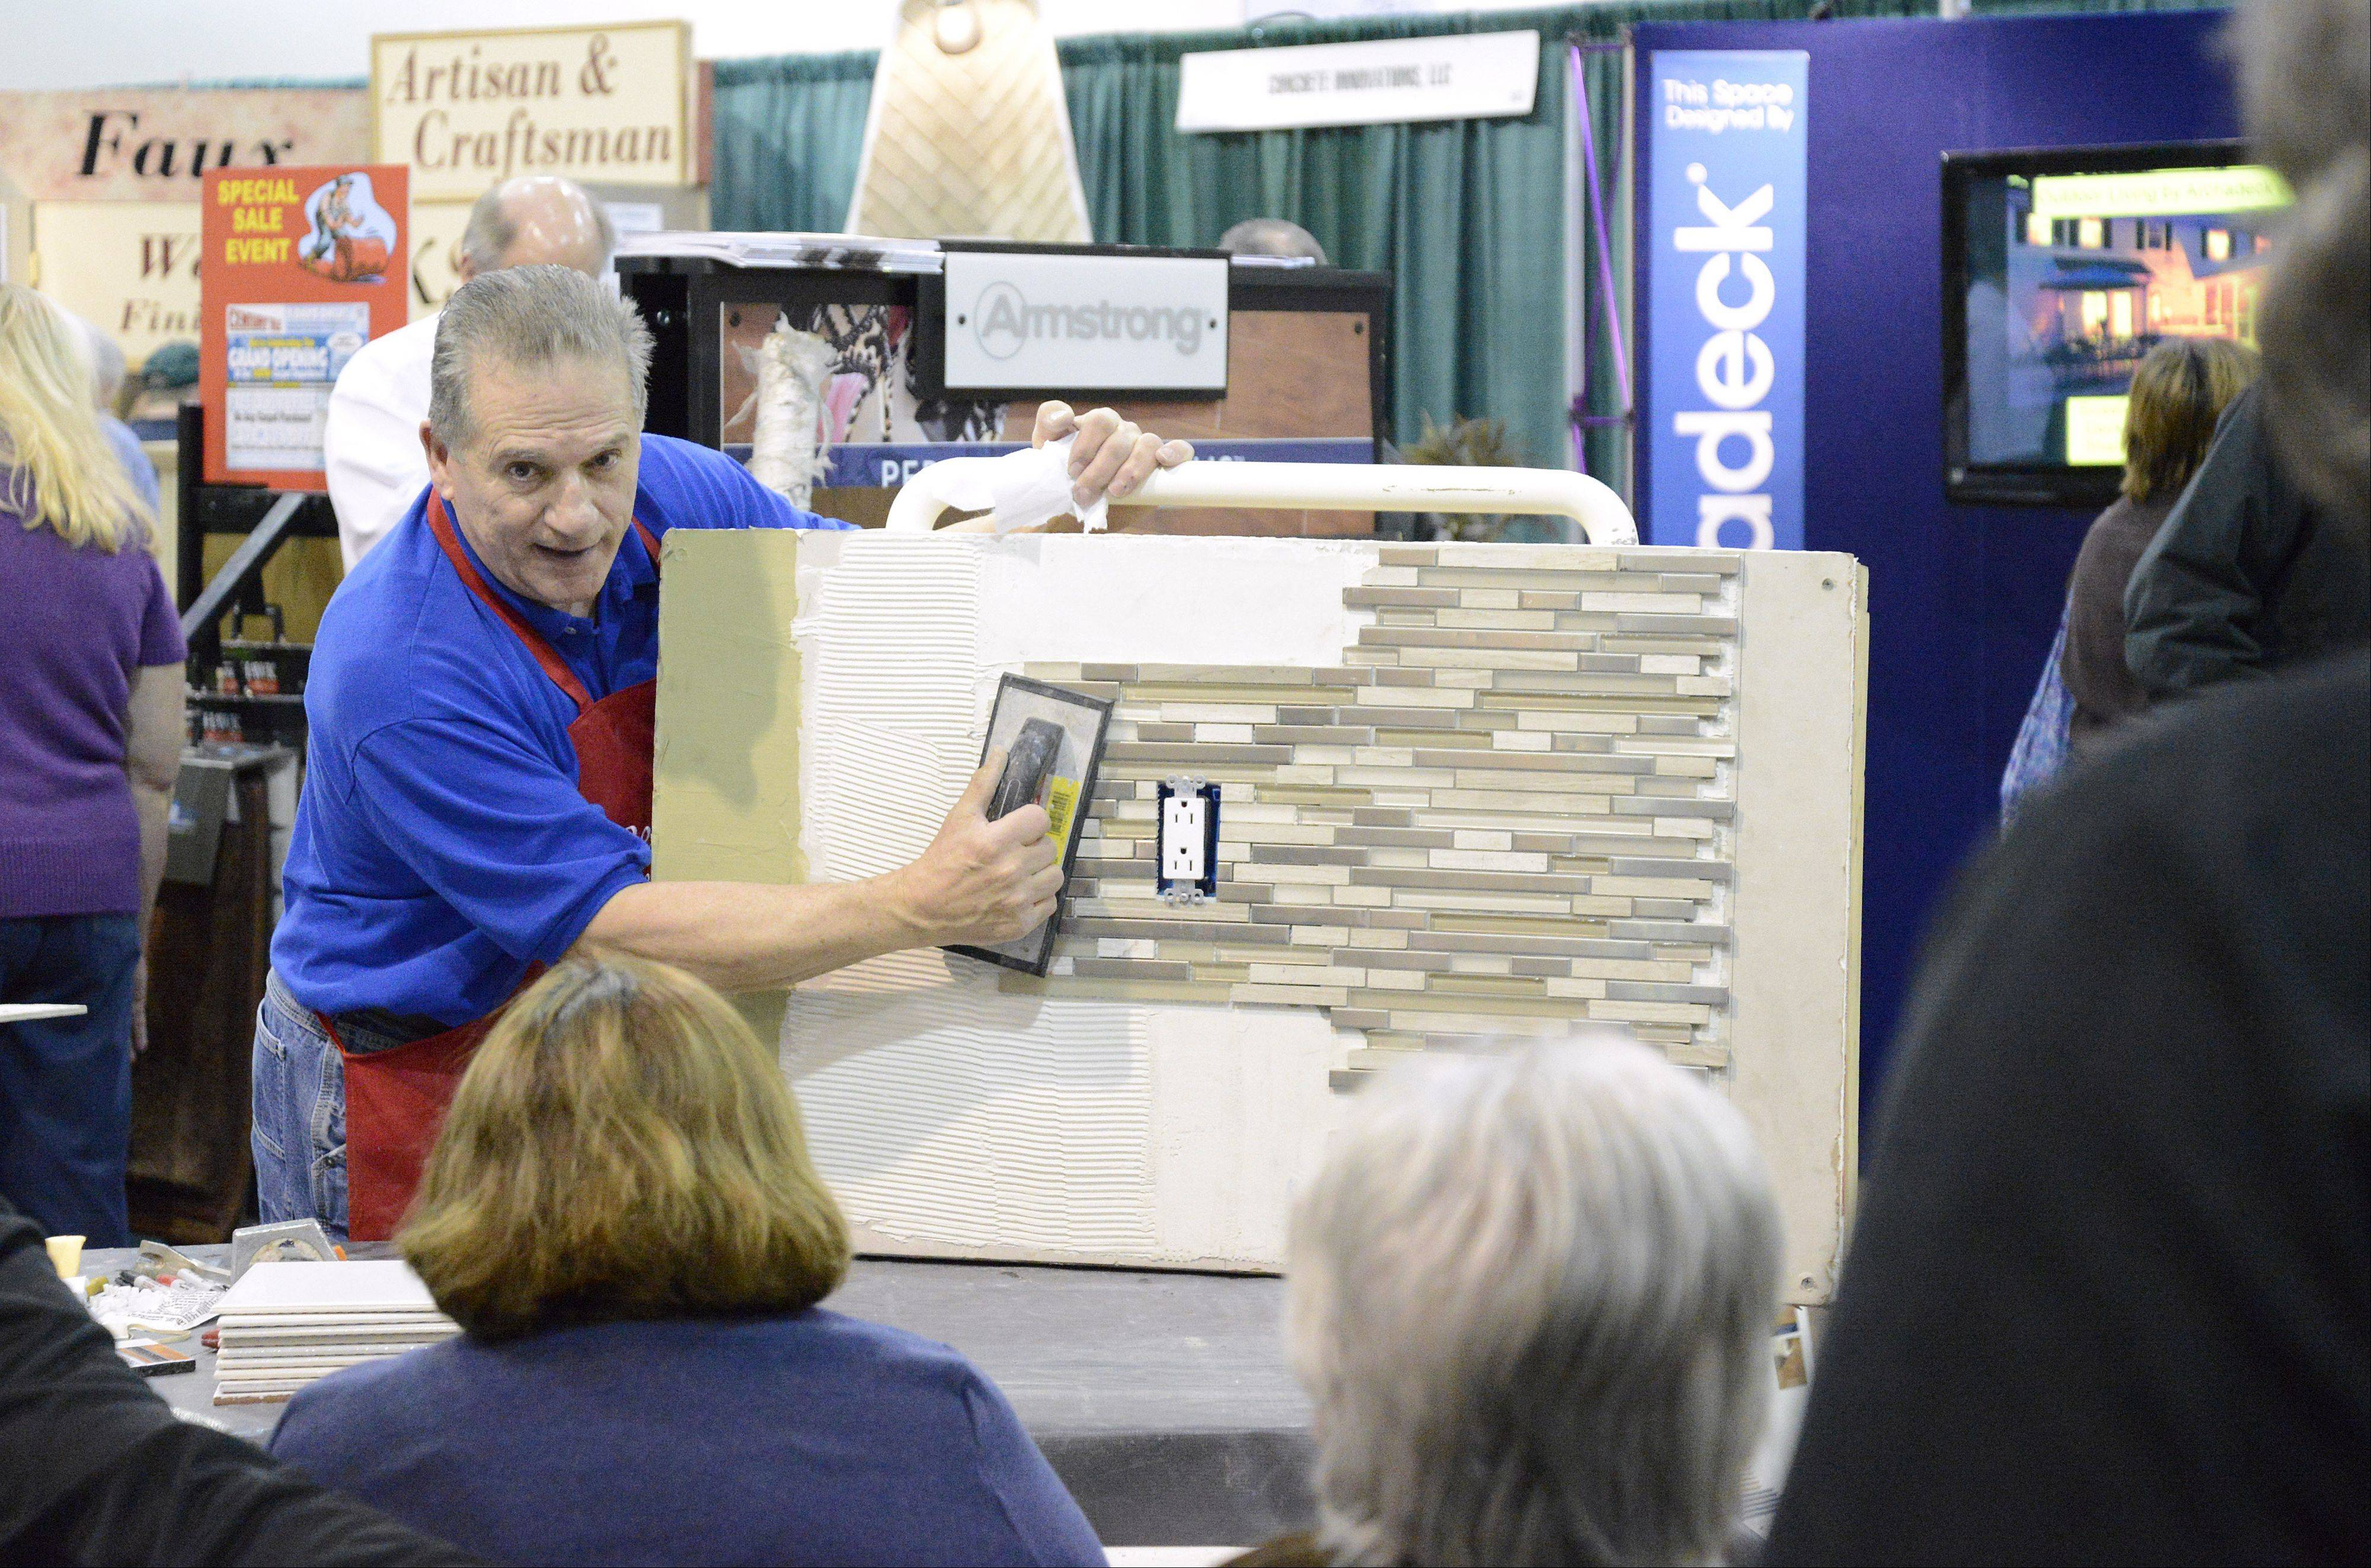 Pete Lettecci (aka �Pete the Pro�) gives a demonstration on how to grout tile in the Century Tile & Carpet booth at the Old House New House Home Show Saturday. Lettecci, who lives in Lake Zurich, teaches about 200 ceramic tile installation classes a year for Century Tile & Flooring. The show continues at the Mega Expo Center and Ballroom at Pheasant Run Resort Sunday from 10 a.m. to 5 p.m.